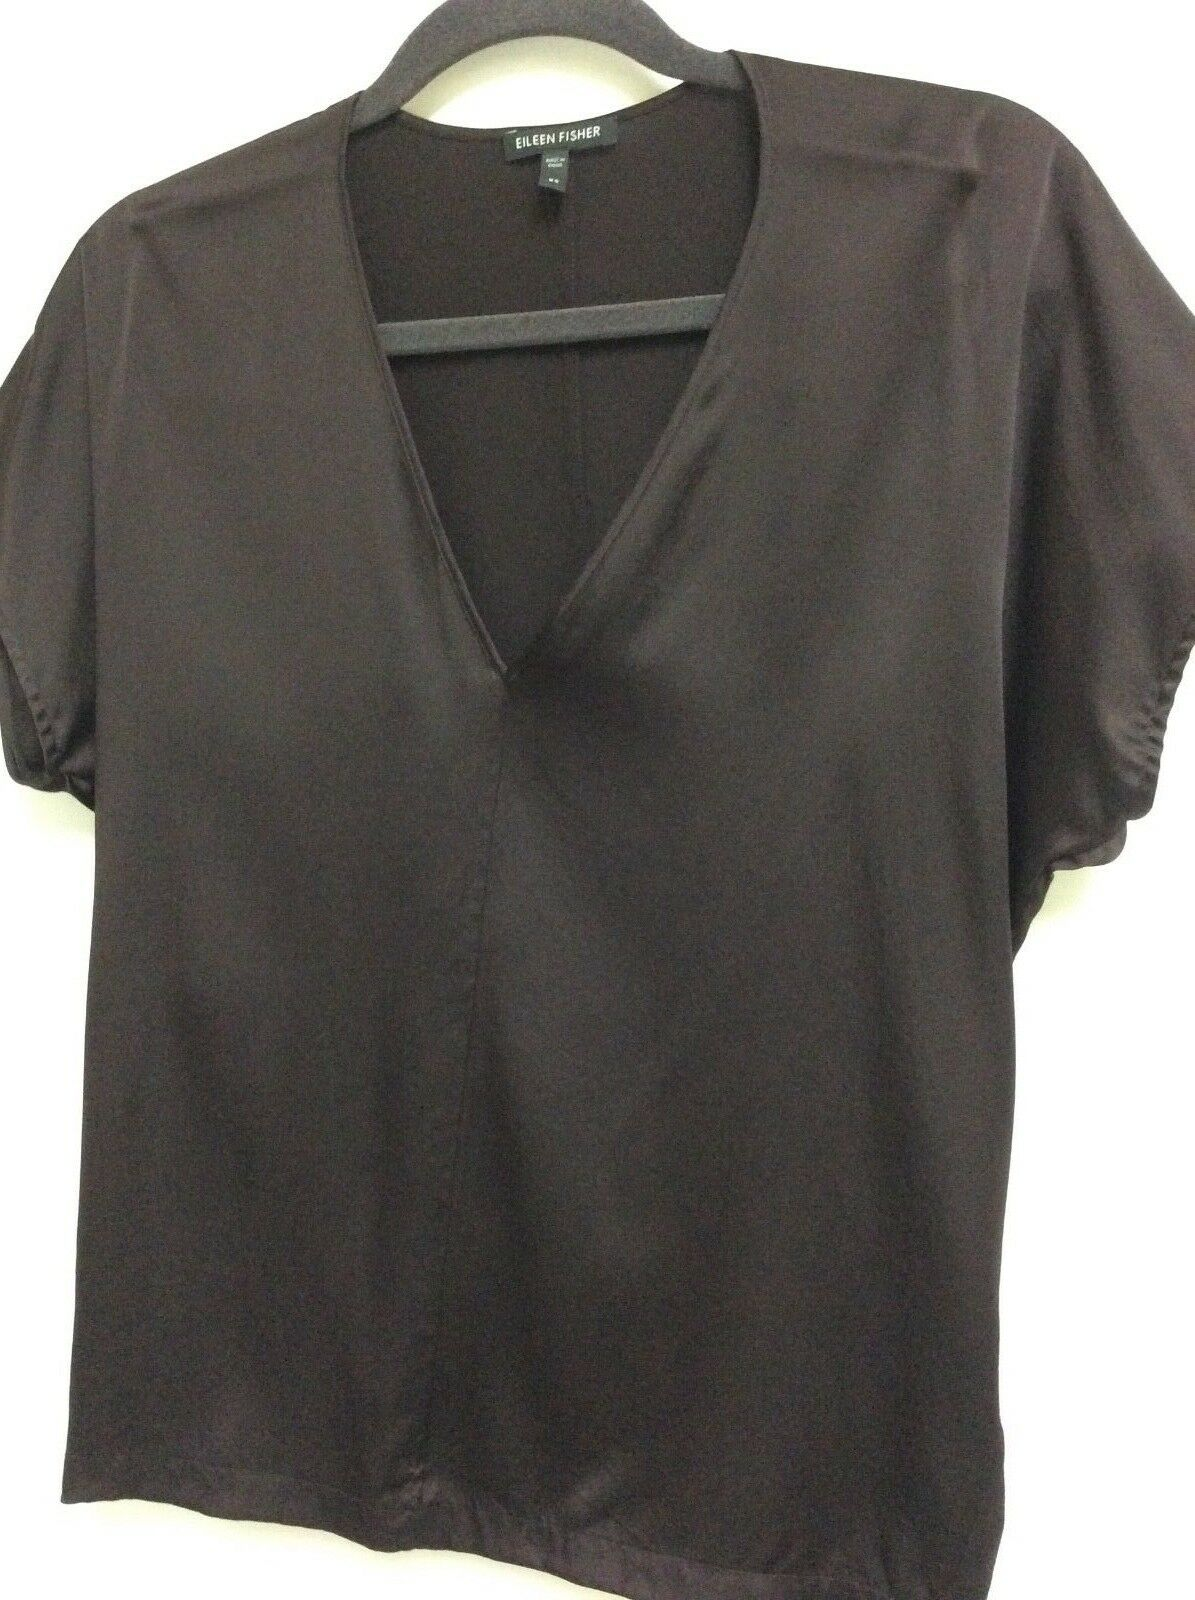 EILEEN FISHER SILK TOP Perfect Condition